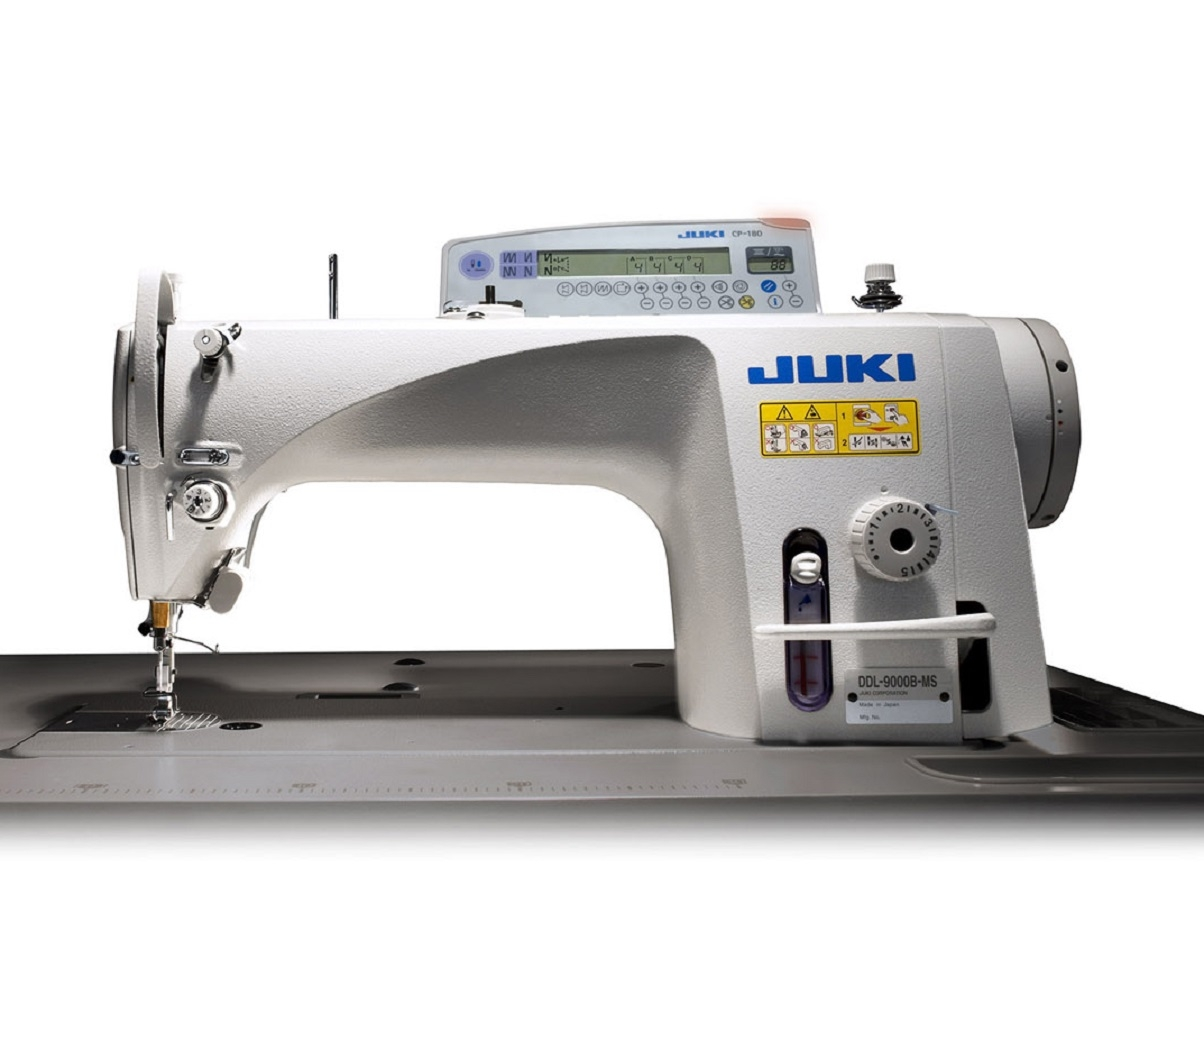 Best Sewing Machine For Advanced Sewers 2020